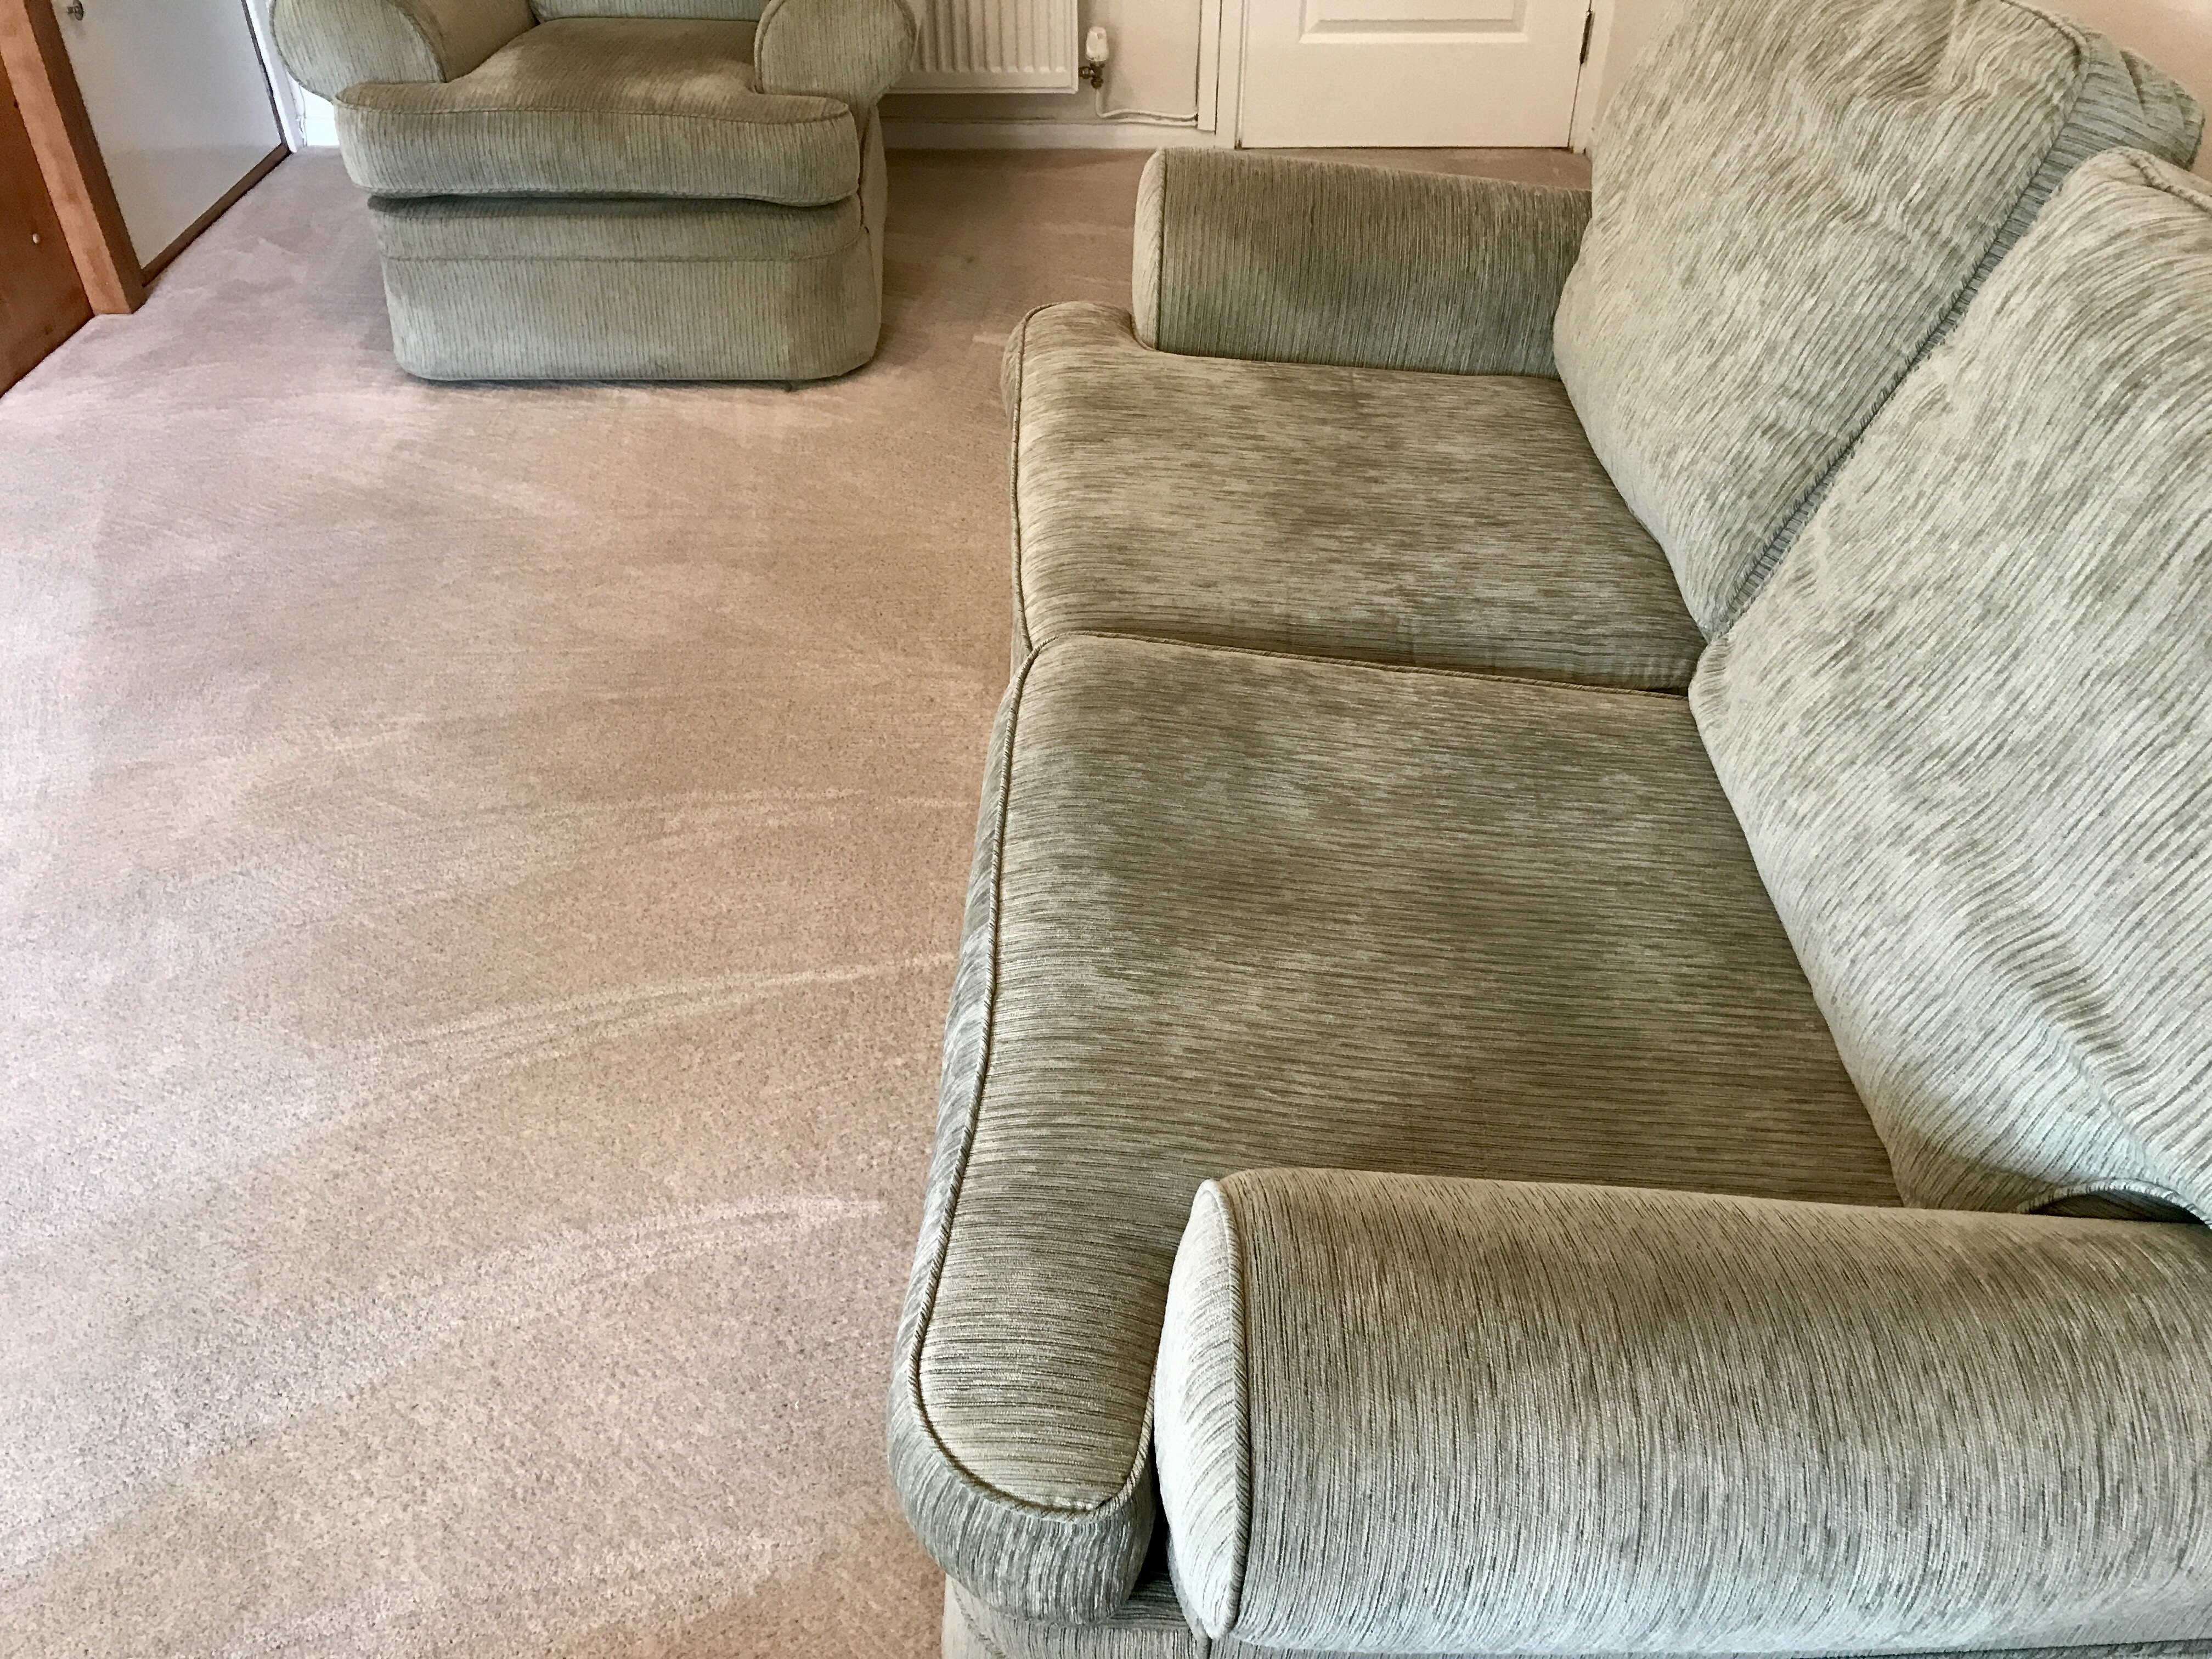 Carpet Cleaner Washington Houghton Le Spring Seaham Dry